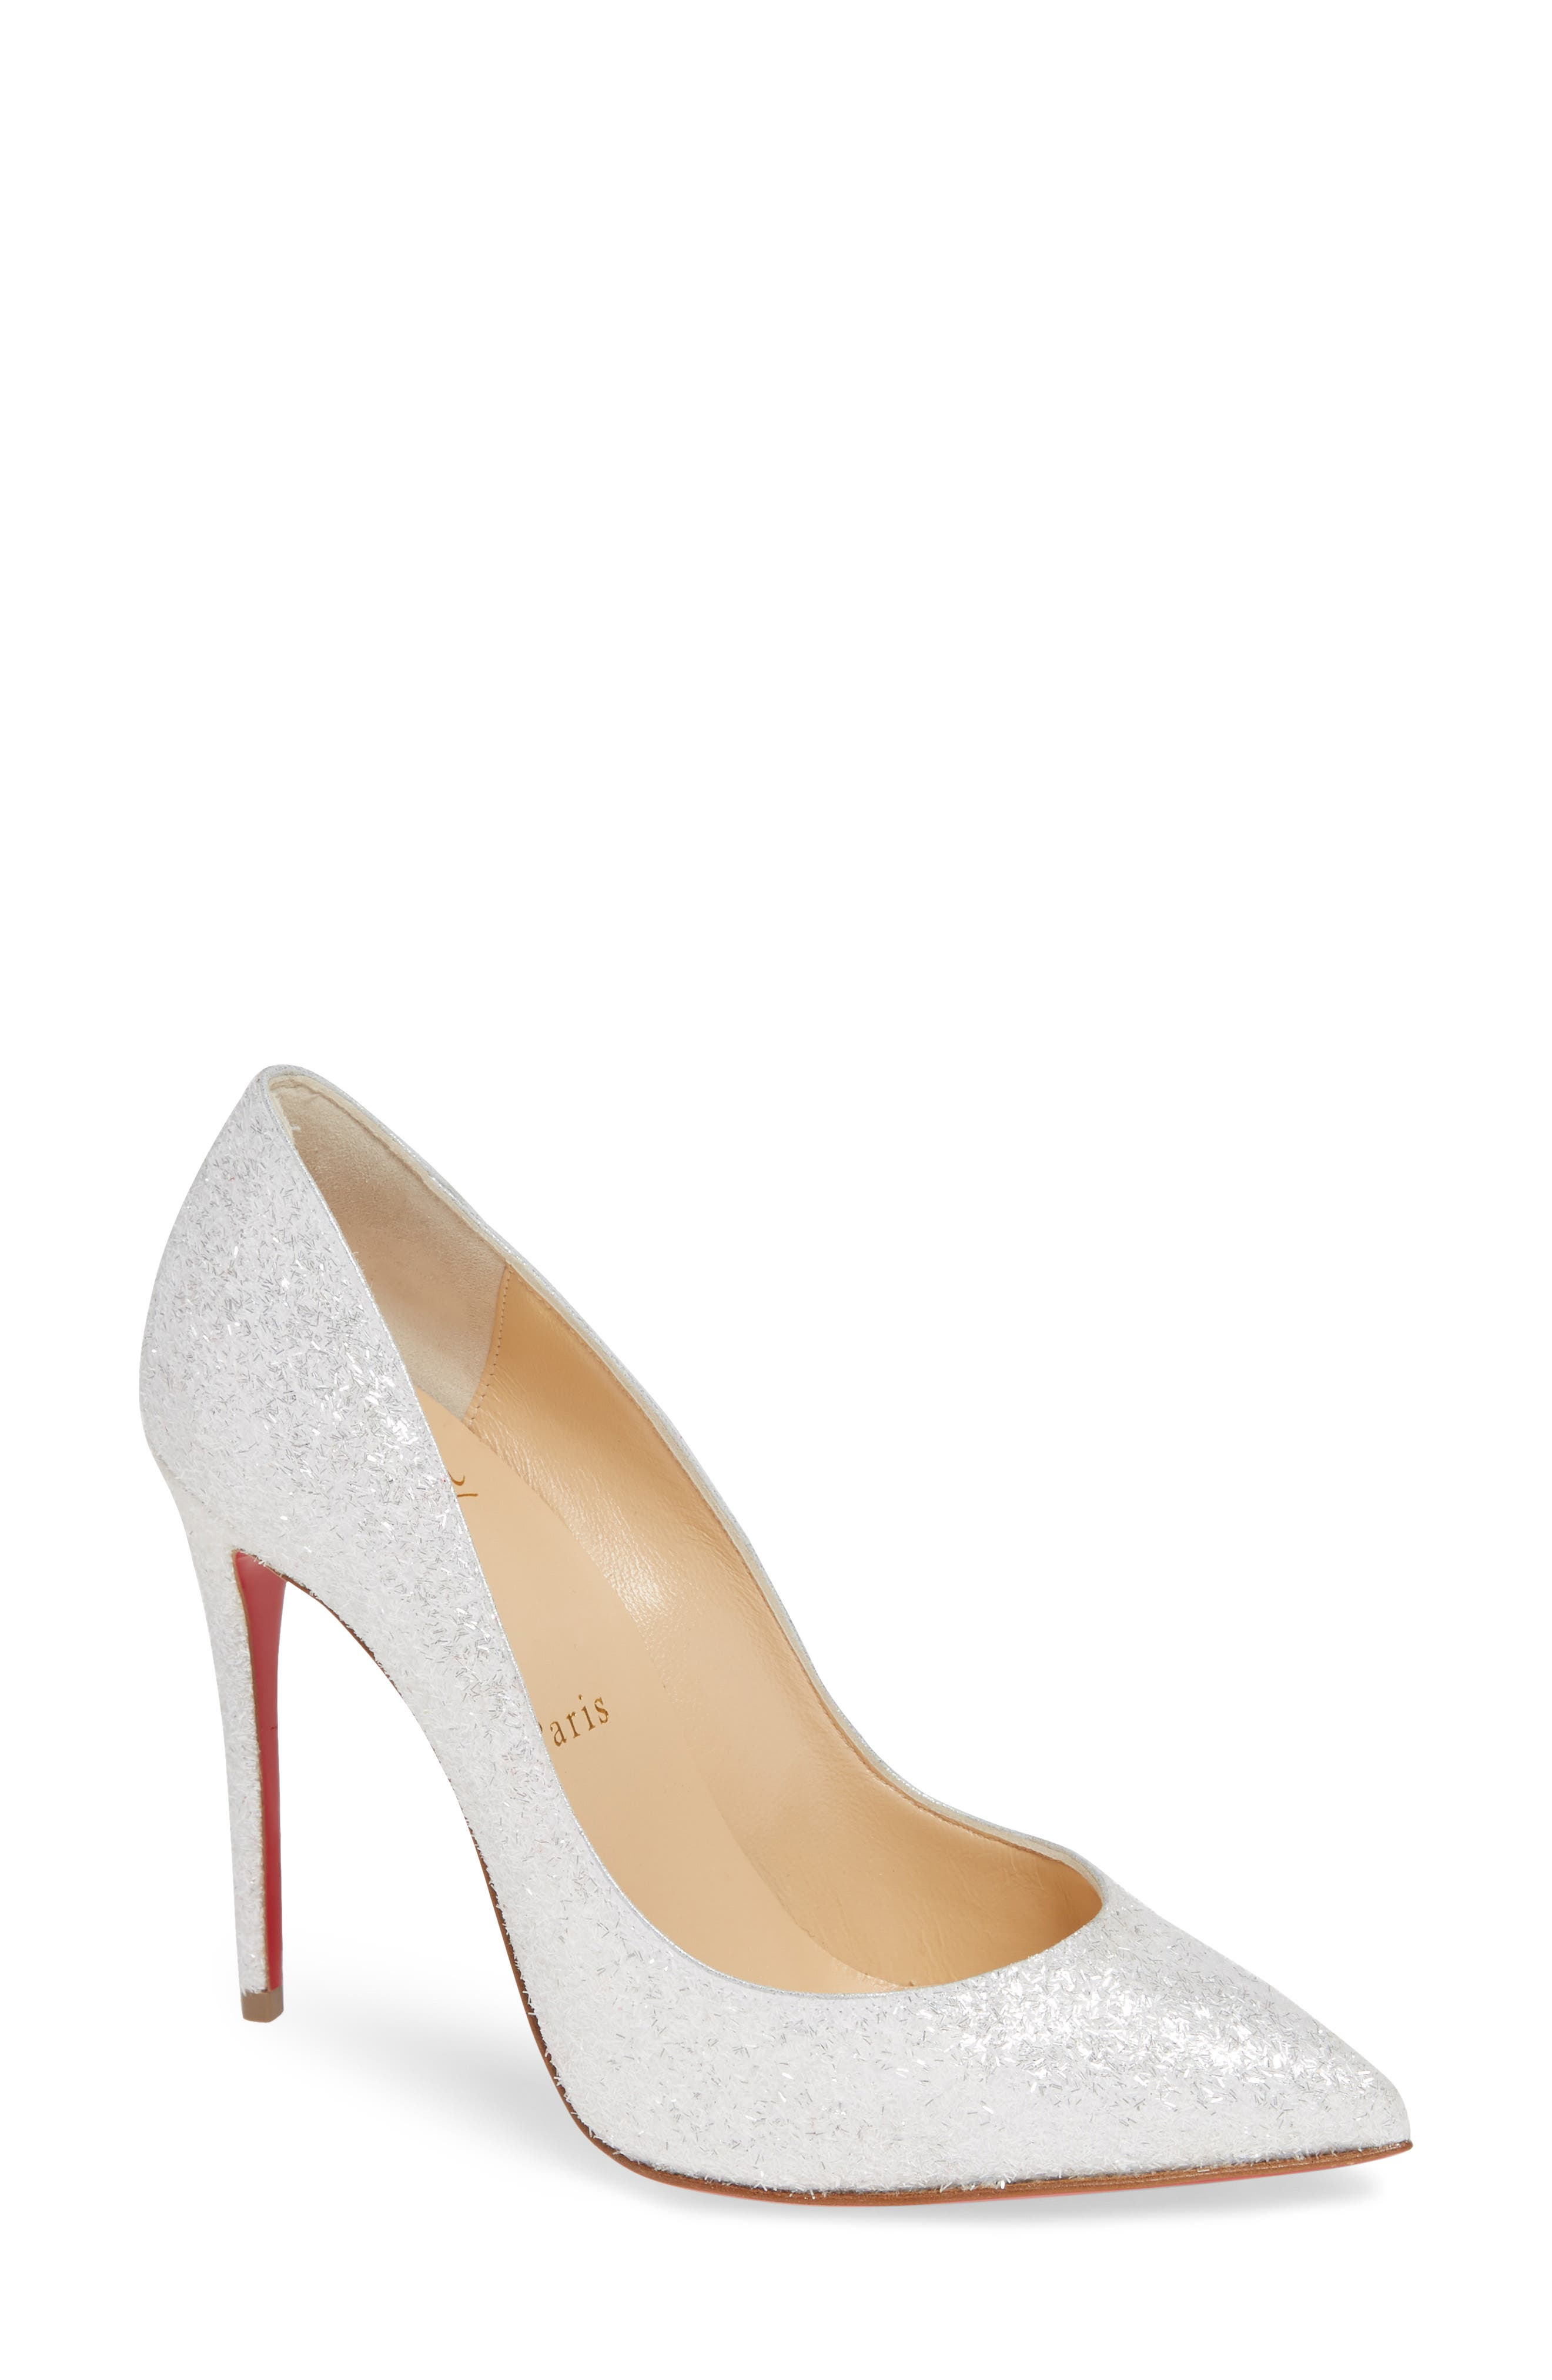 CHRISTIAN LOUBOUTIN Pigalle Follies Pointy Toe Pump, Main, color, WHITE GLITTER